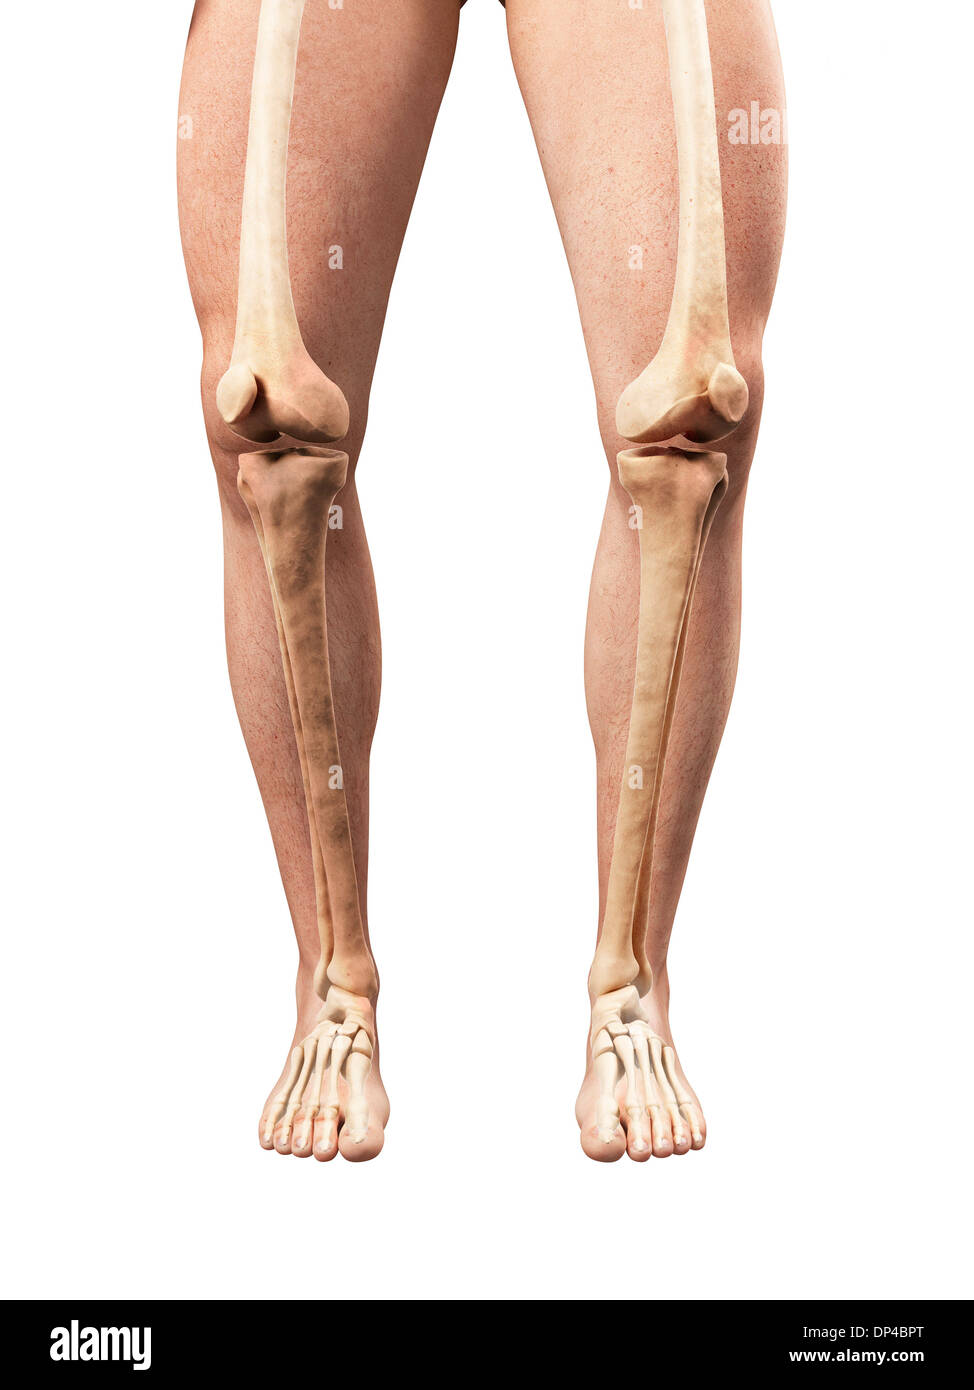 Bowed legs, artwork - Stock Image